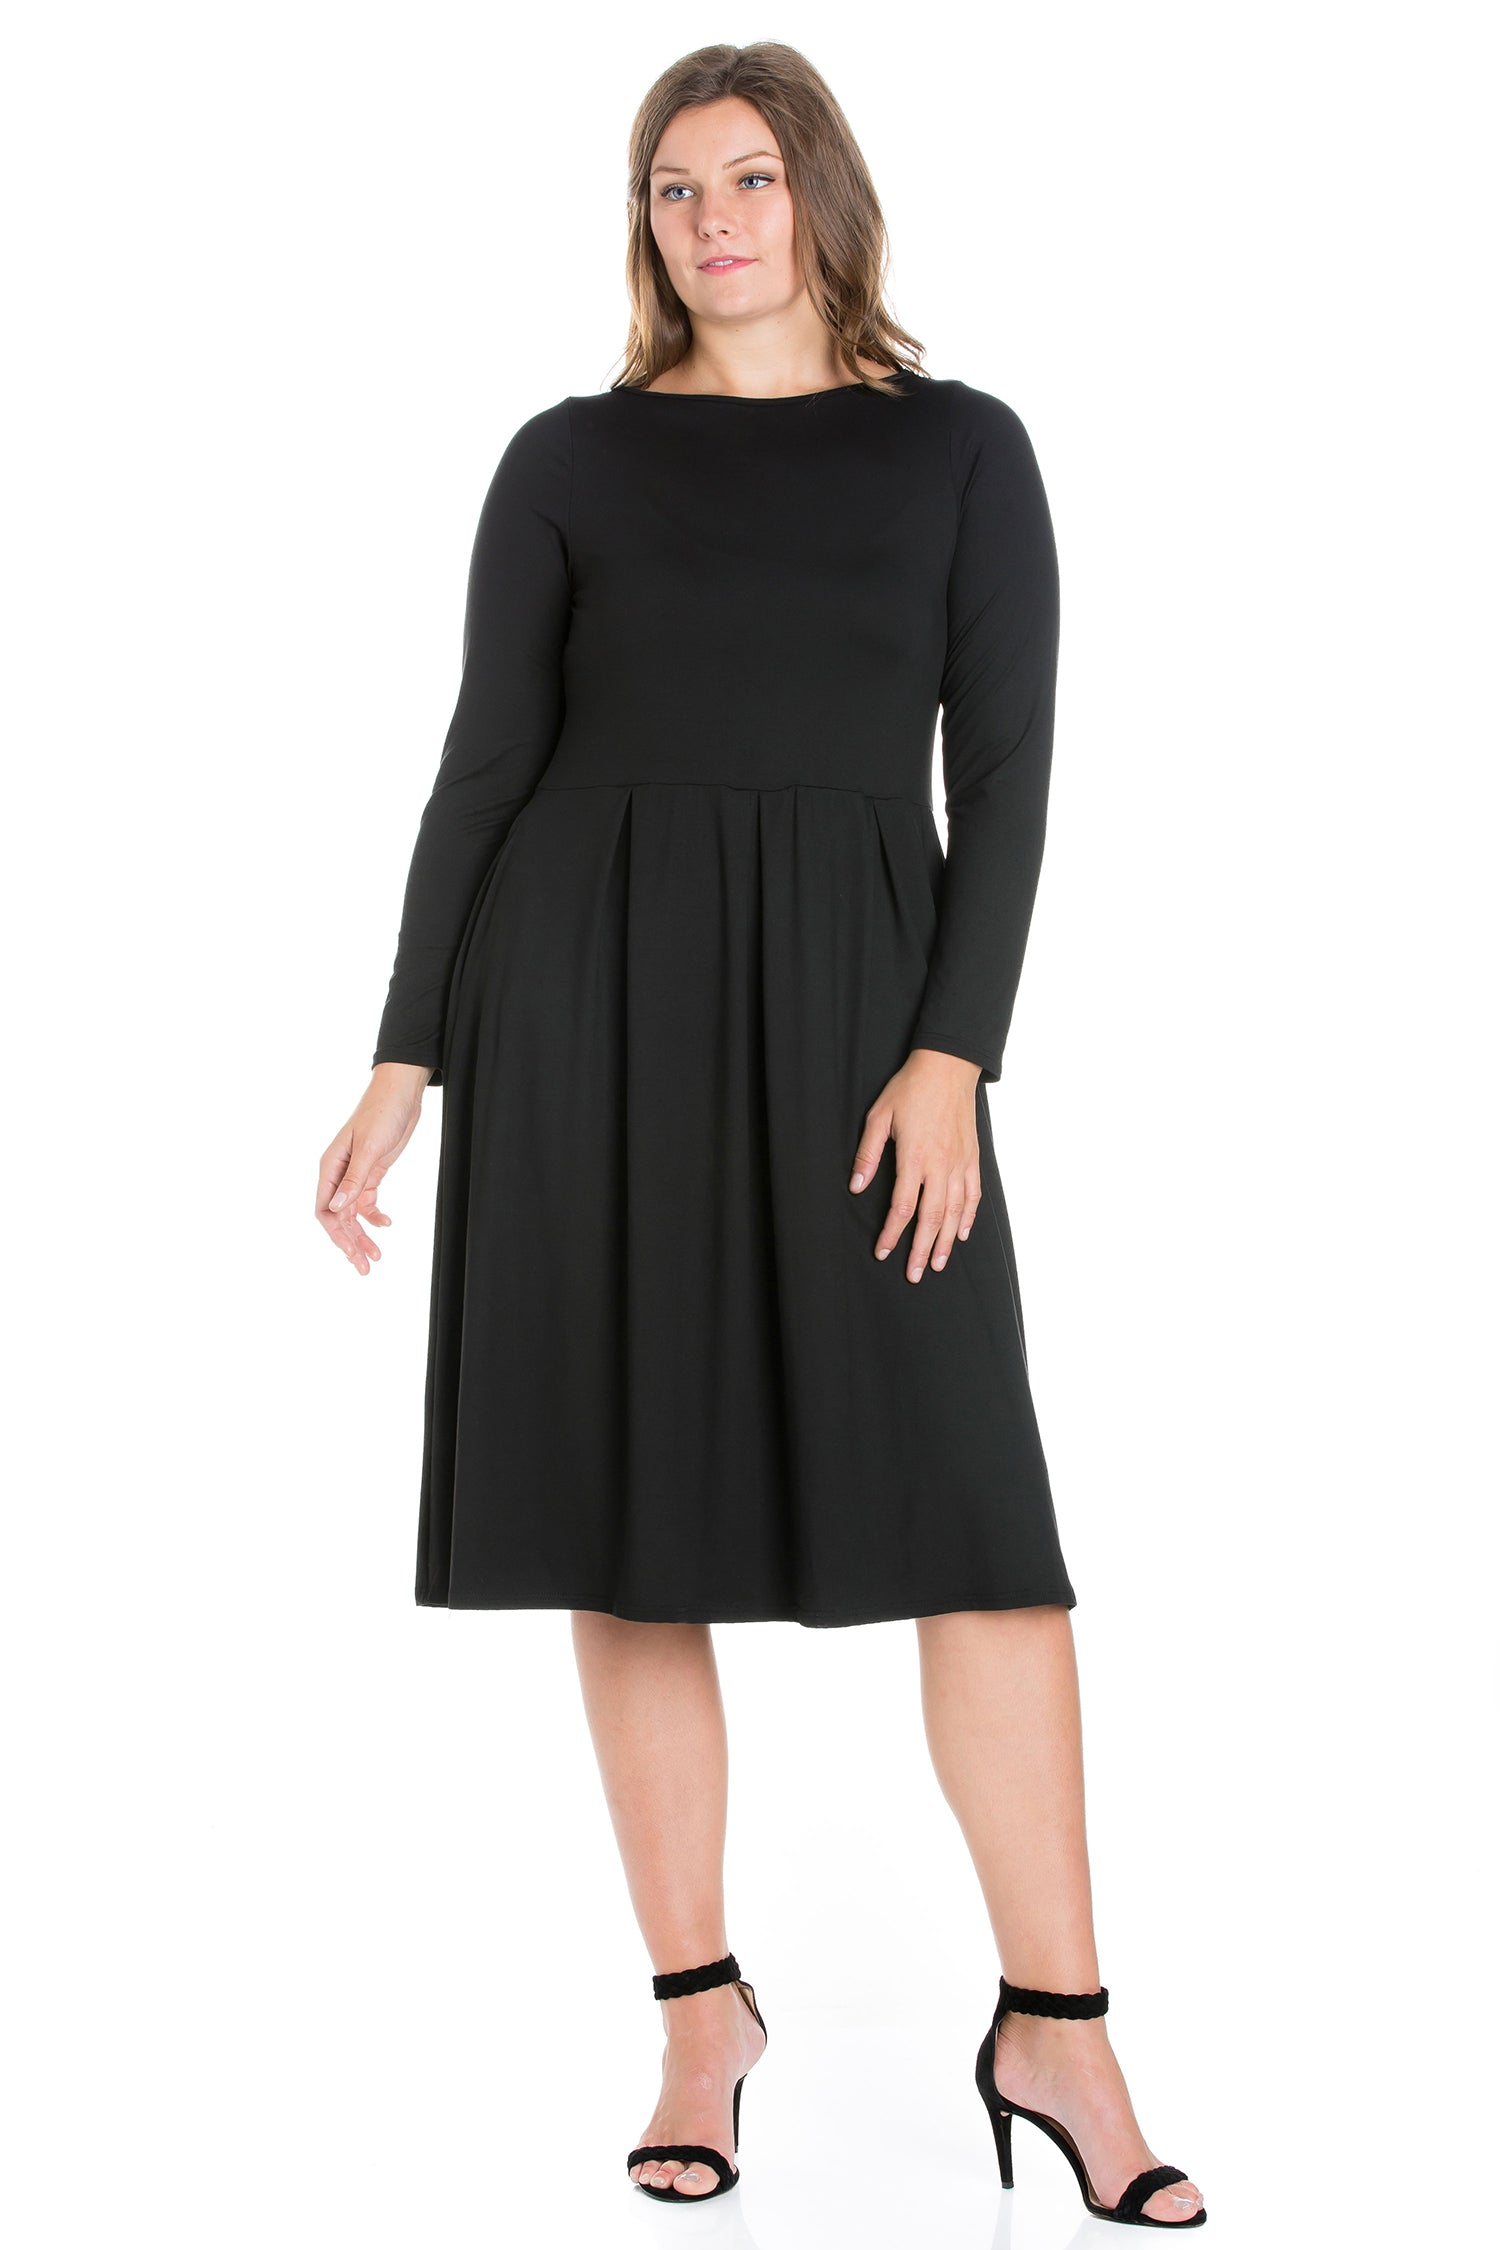 24seven Comfort Apparel Long Sleeve Fit and Flare Plus Size Midi Dress-DRESSES-24Seven Comfort Apparel-BLACK-1X-24/7 Comfort Apparel